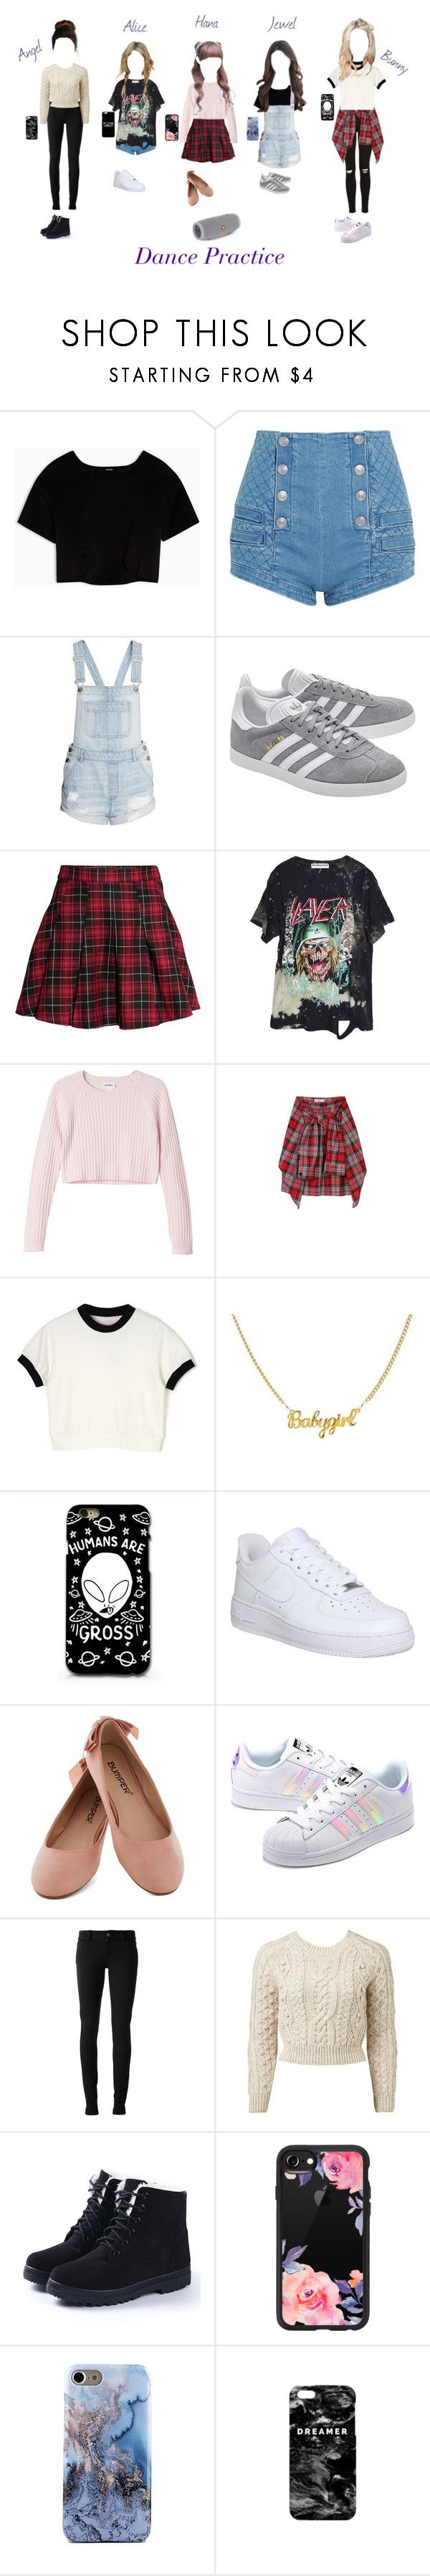 """Wings dance practice"" by wingsofficial ❤ liked on Polyvore featuring Max&Co., Pierre Balmain, adidas Originals, H&M, High Heels Suicide, Monki, NIKE, Gucci, Forever New and Casetify"